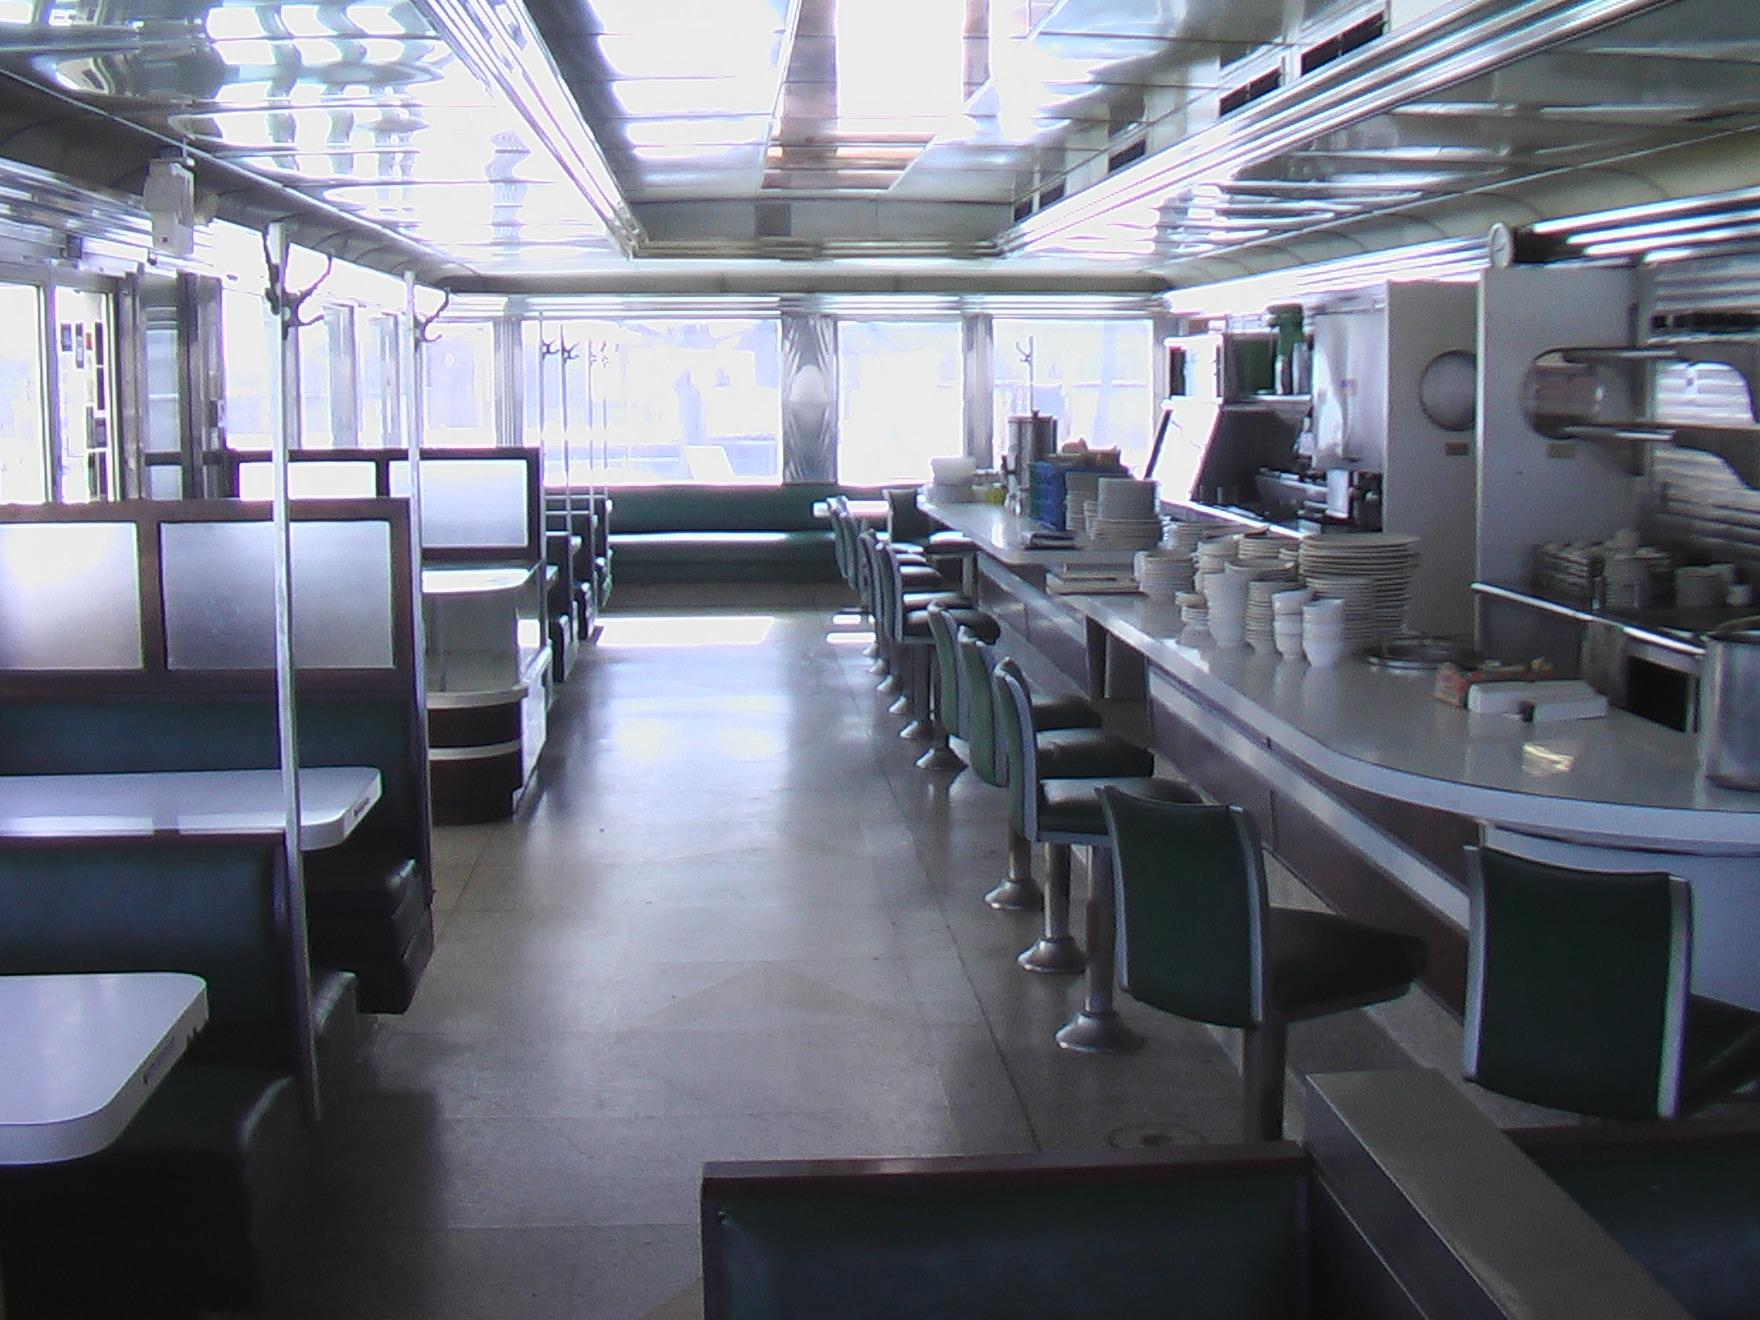 Venus Diner 1955 Fodero Diversified Diners Diners For